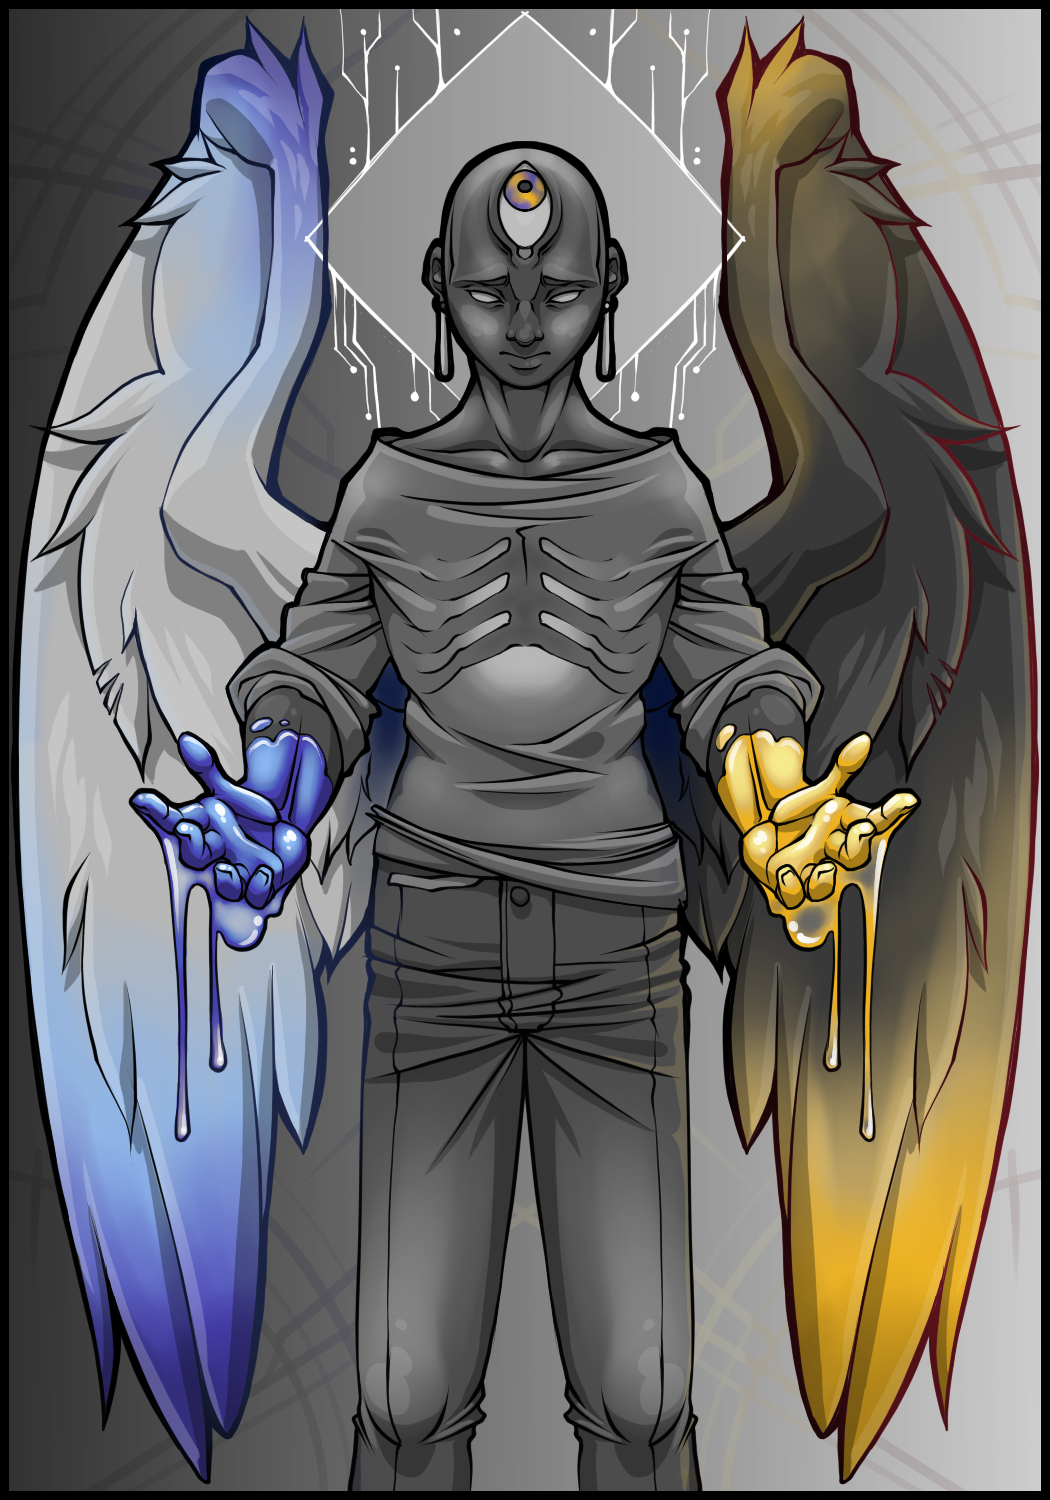 A grey figure with a third eye in the center of their forehead and with wings holds out their hands. One is covered in blue paint, the other in yellow. The paint stains their wings.